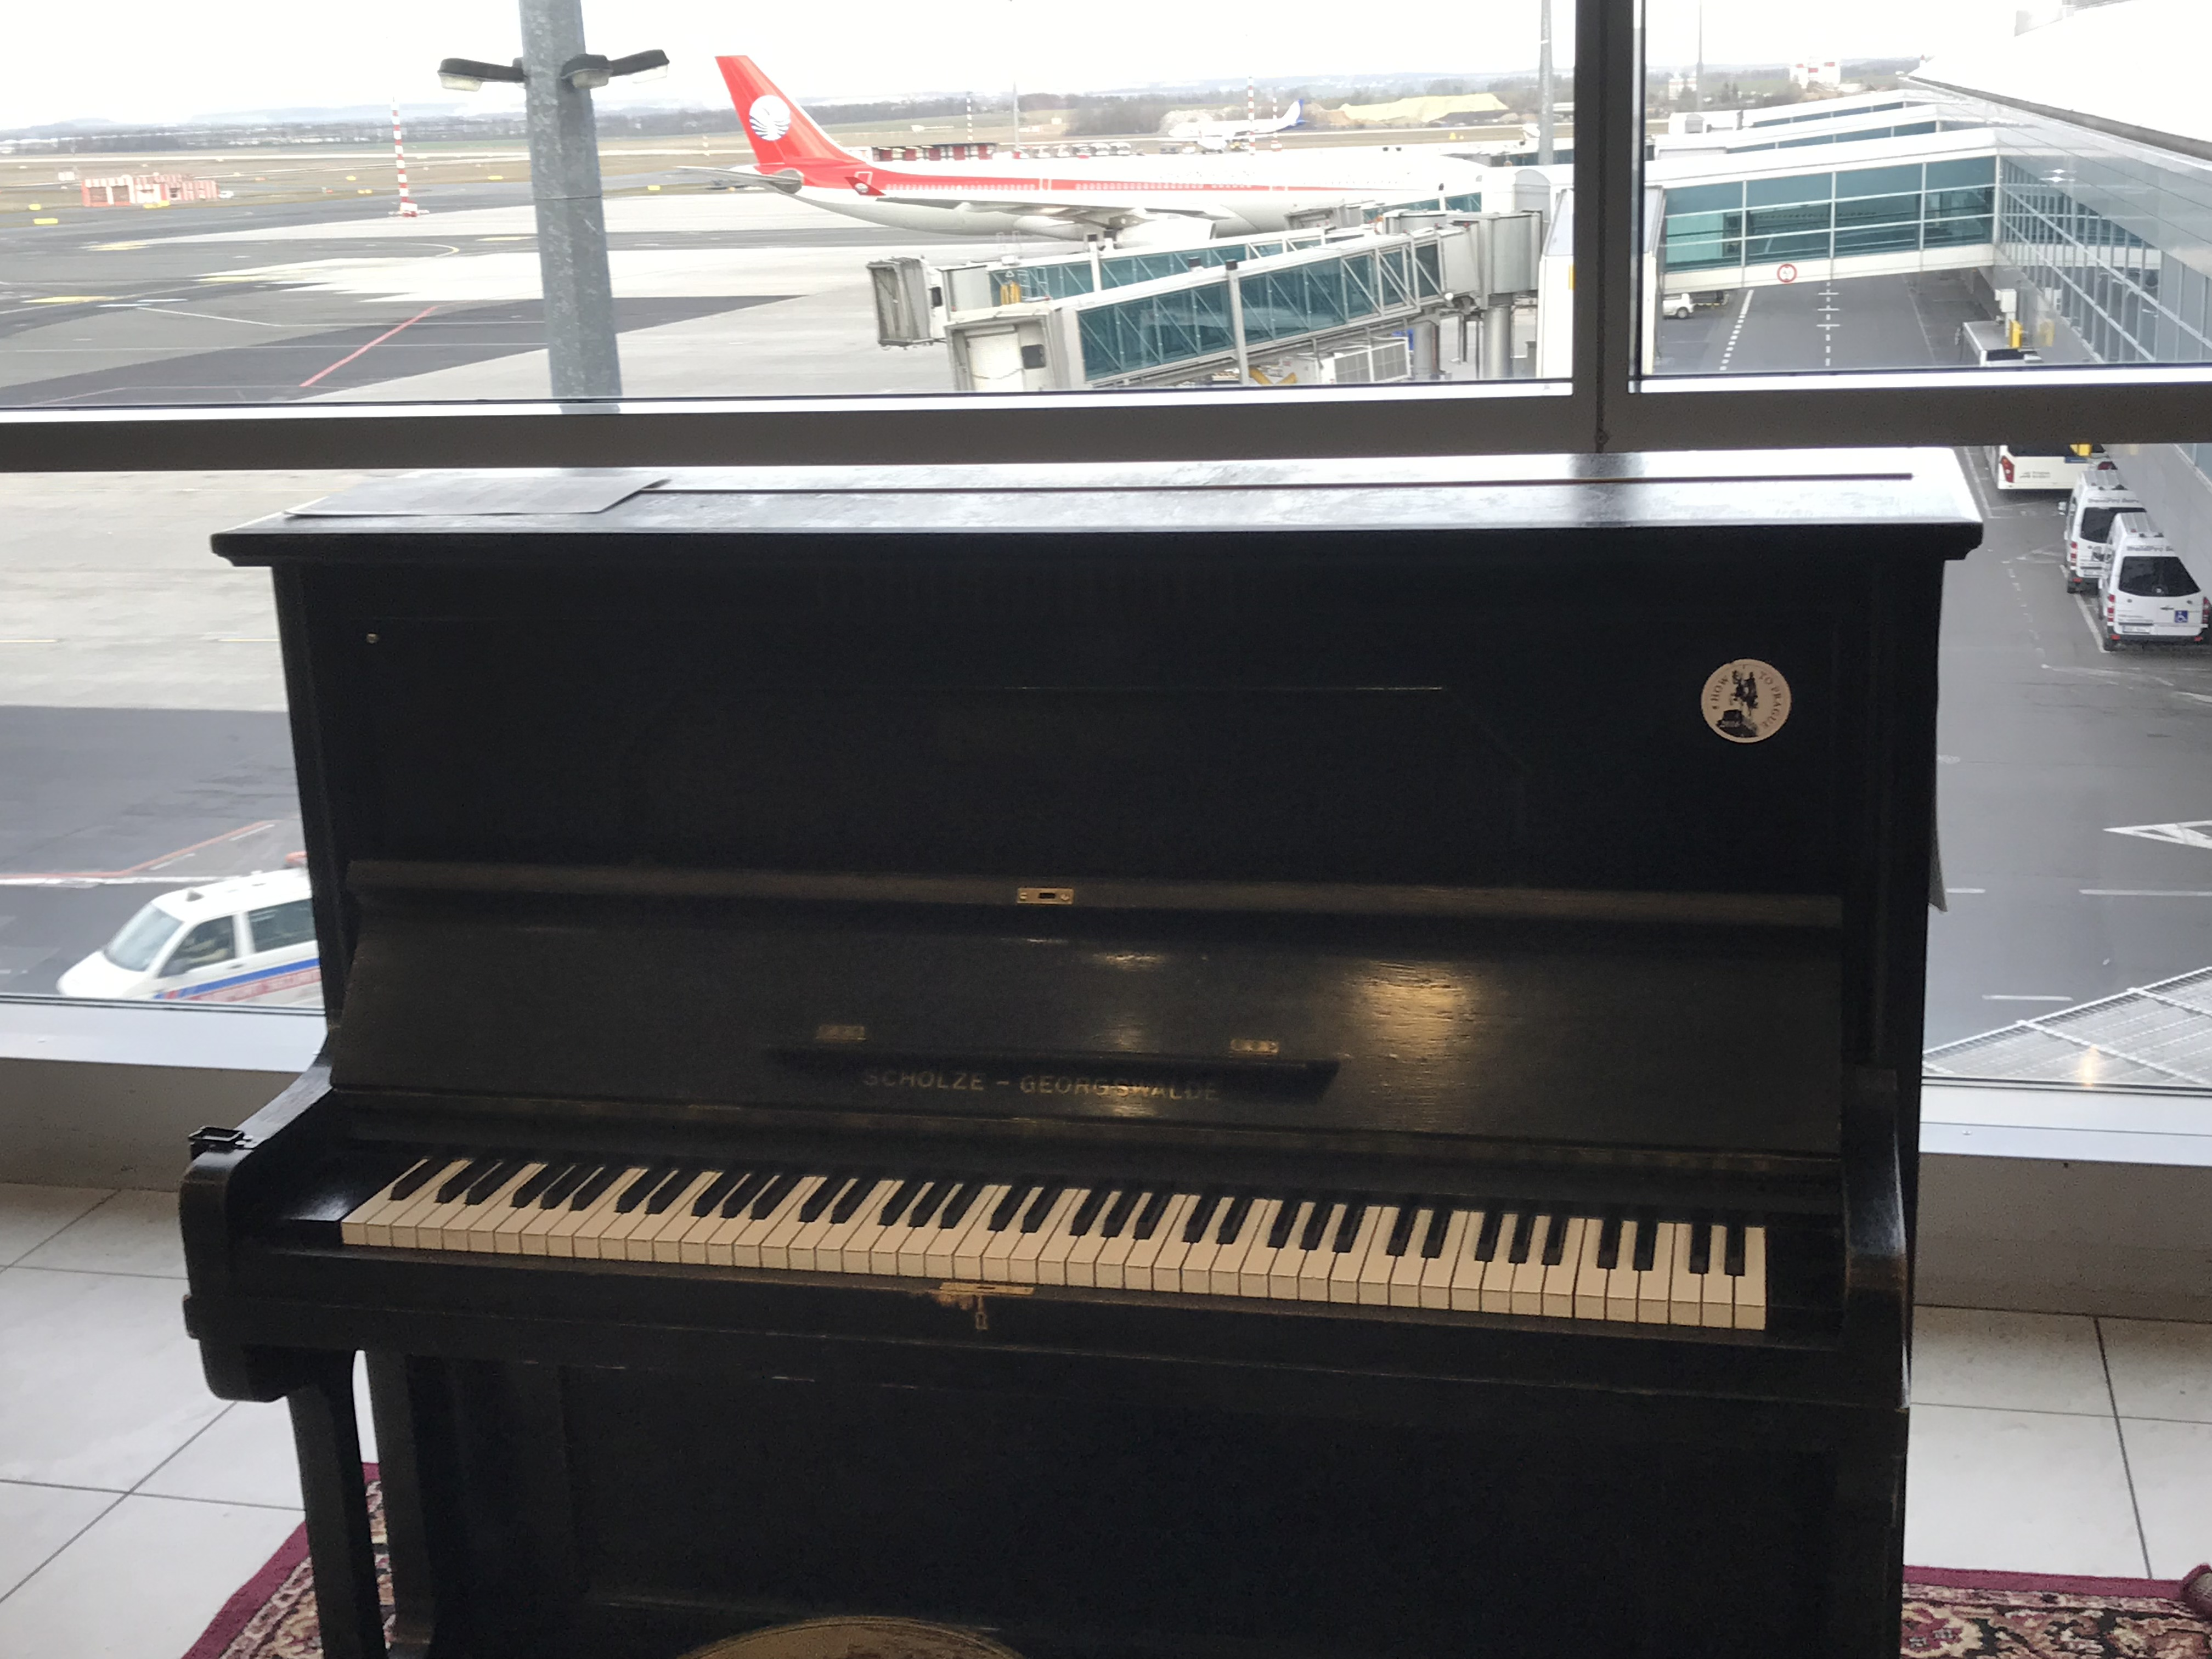 The piano at the Airport of Prague